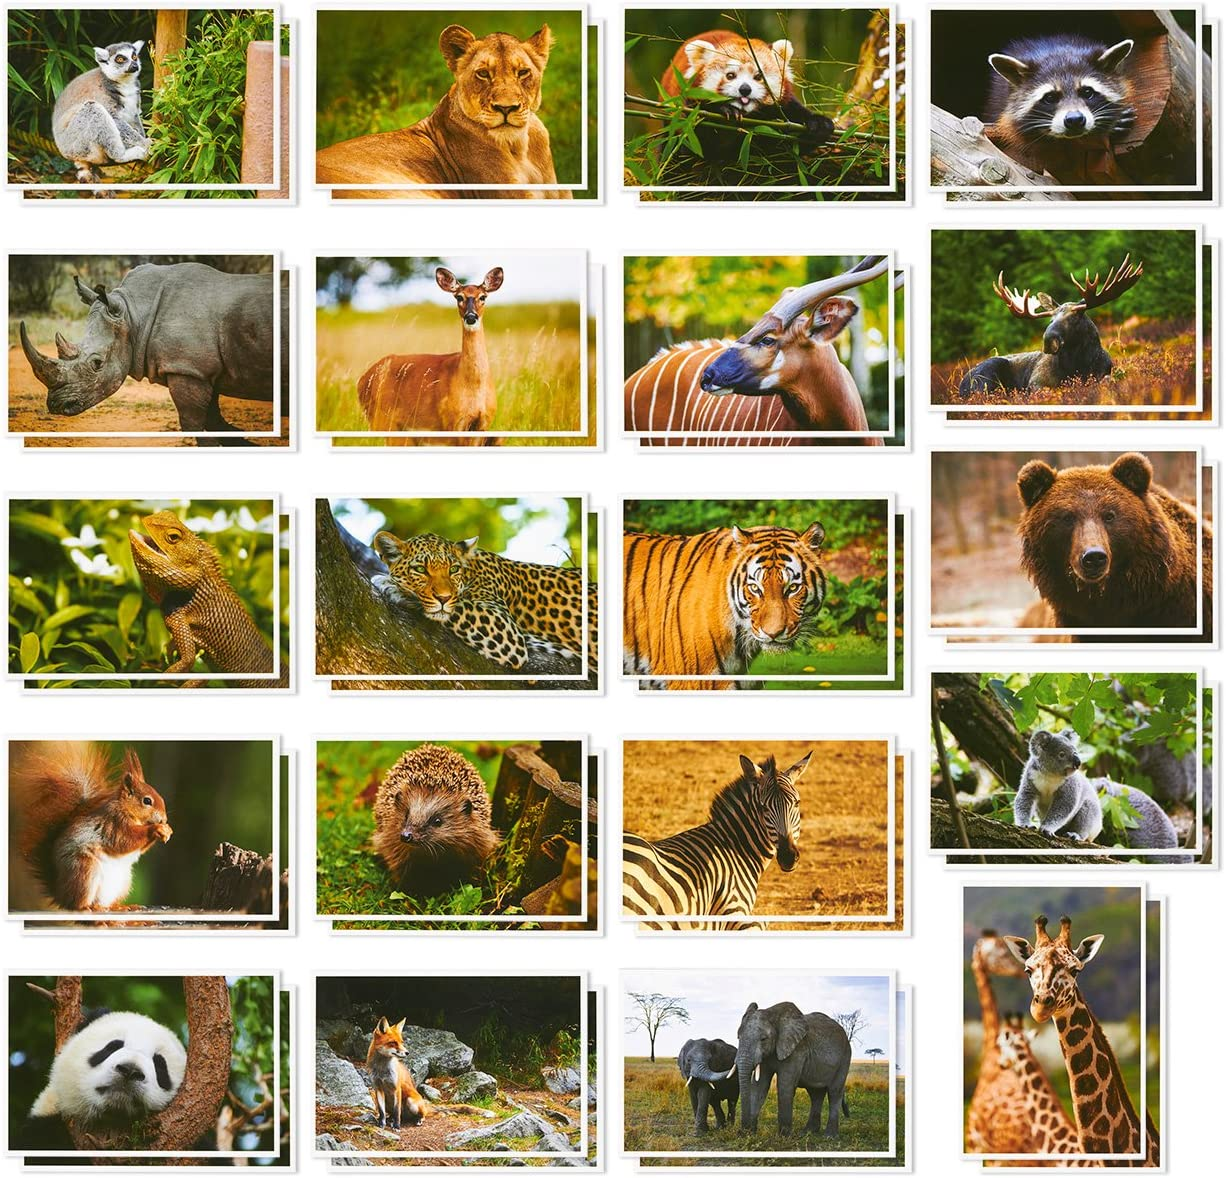 Wild Animal Postcards – 40 Postcards – Bulk Set - Featuring Tigers, Bears, Giraffes, Elephants, & More – 4 x 6 Inches